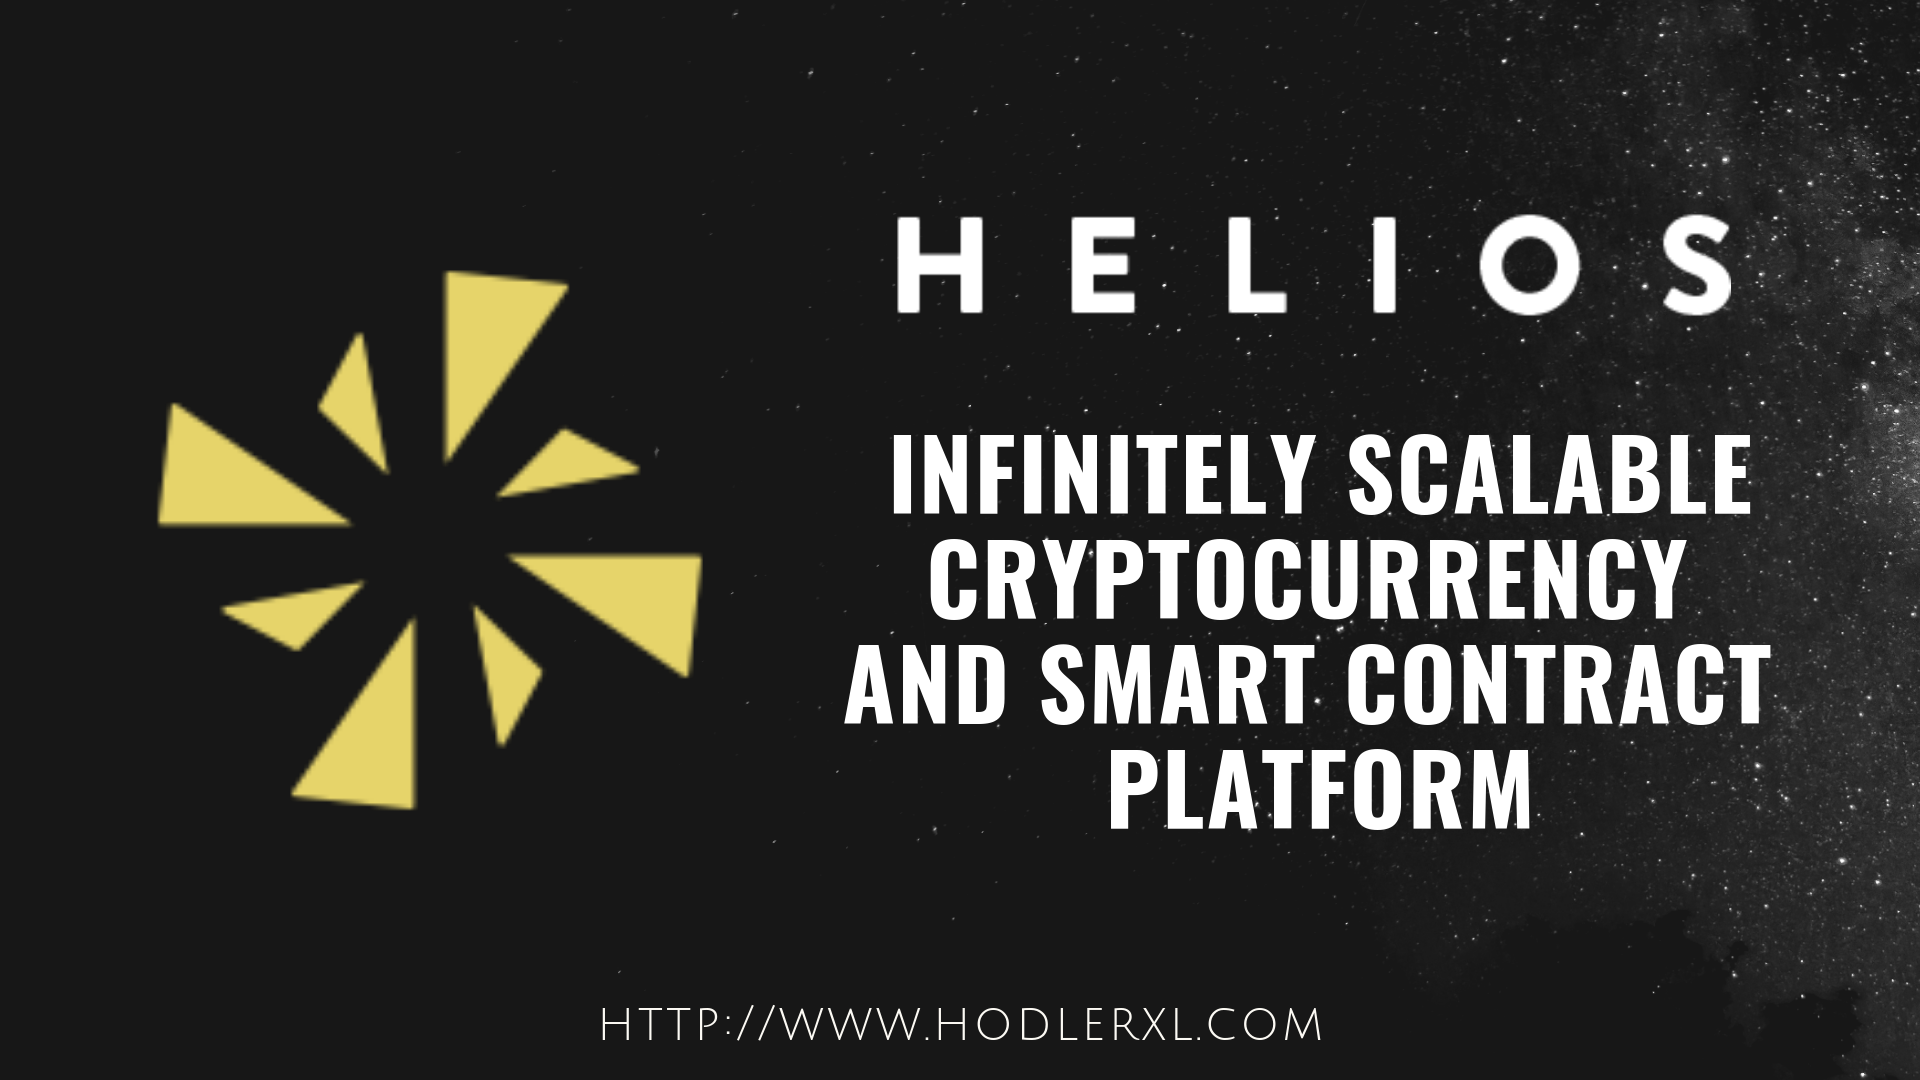 Helios Protocol: An Infinitely Scalable Cryptocurrency And Smart Contract Platform